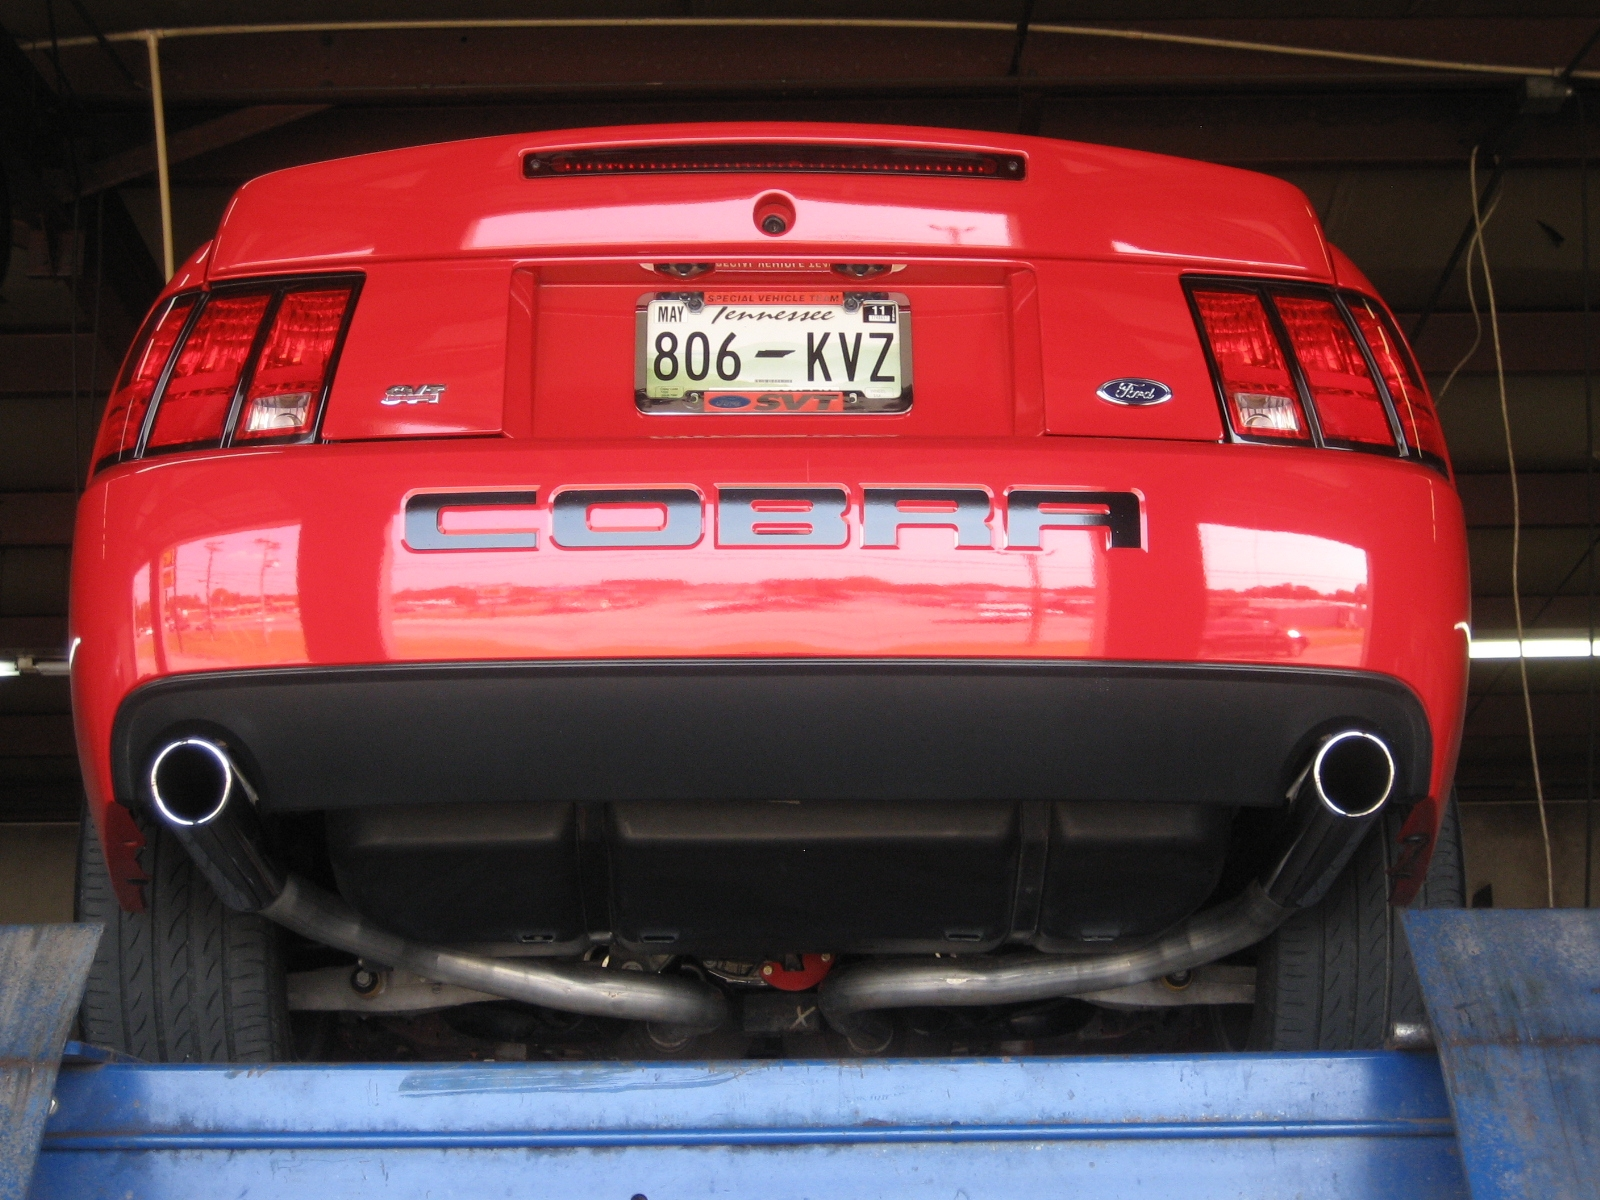 Cobra_im 2003 Ford Mustang 9235072